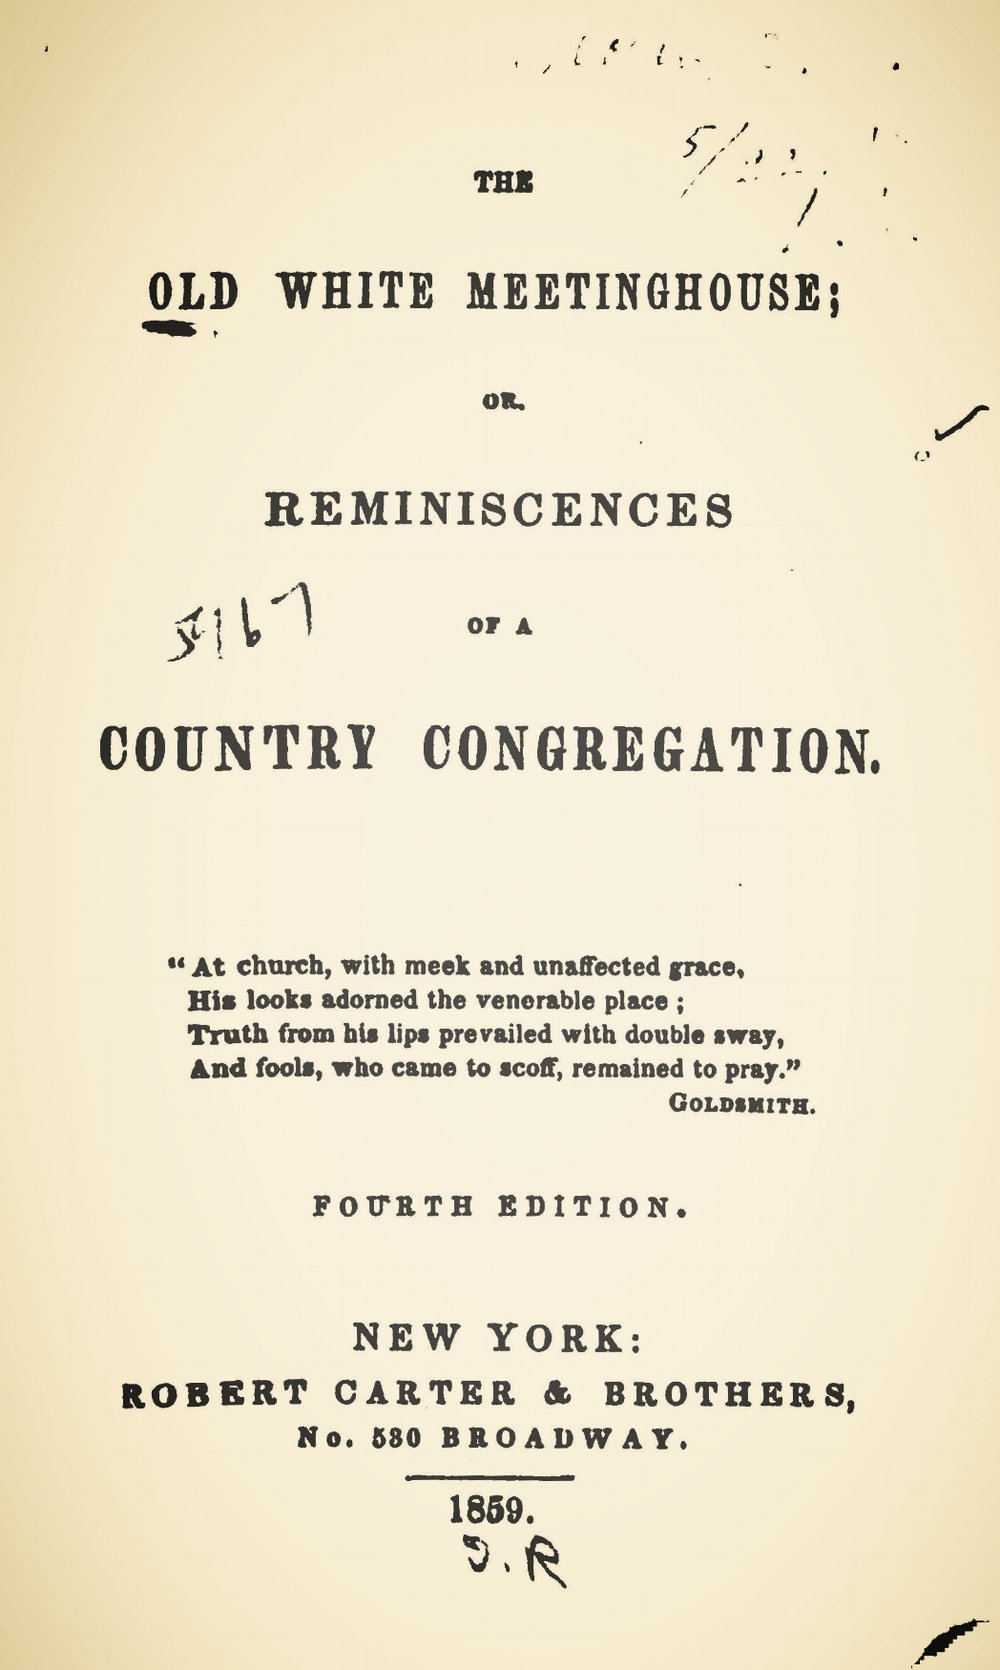 Prime, Samuel Irenaeus, The Old White Meetinghouse Title Page.jpg